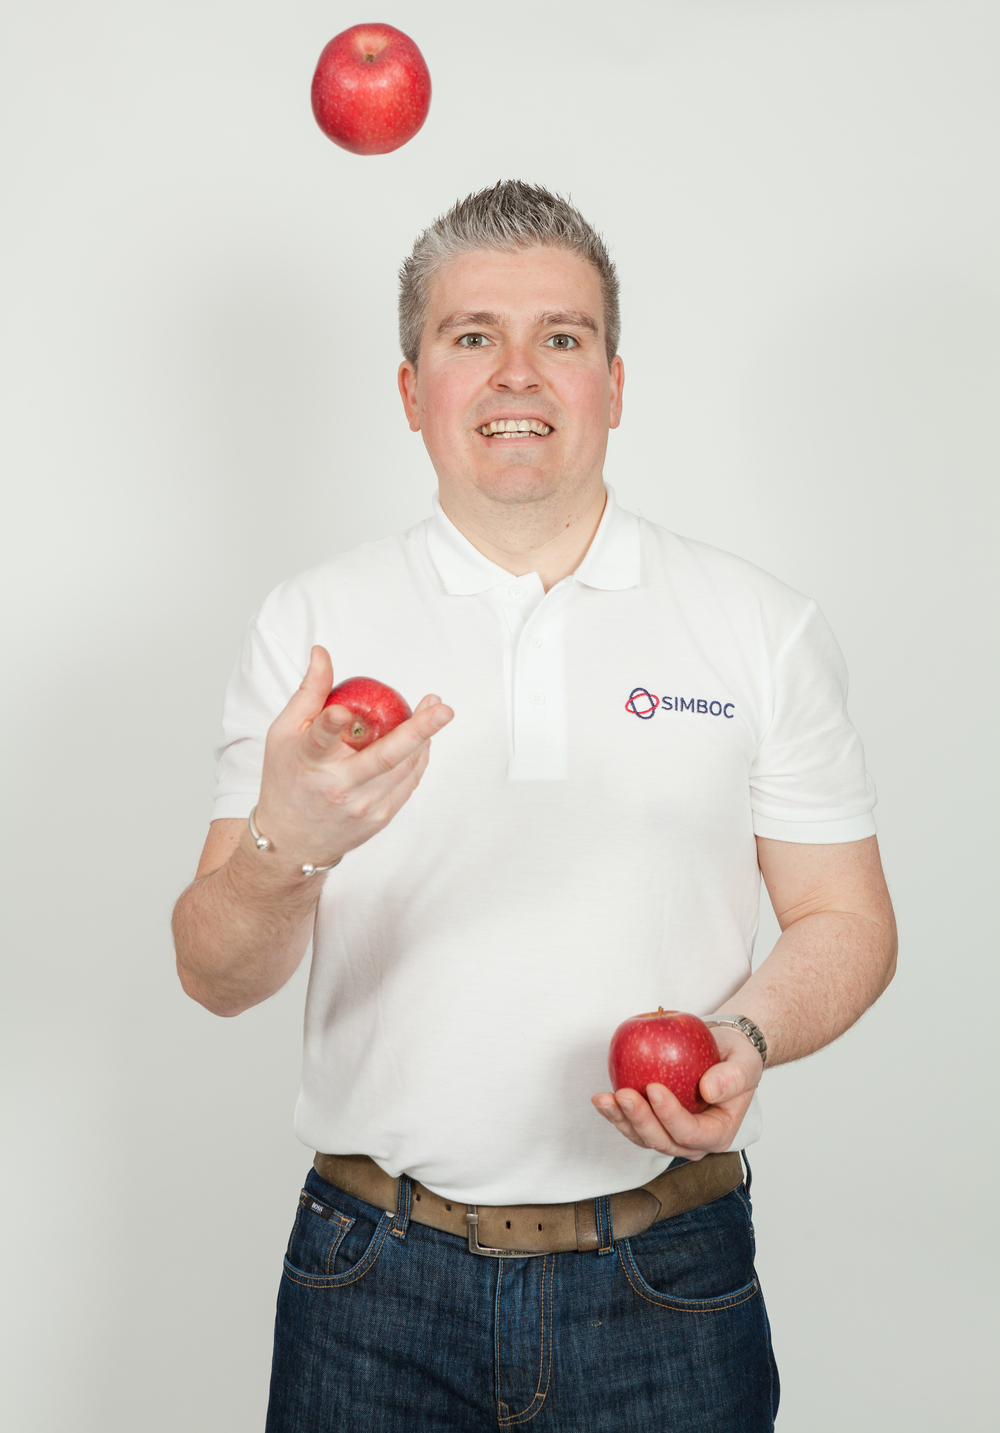 Dave juggling Apples_SimbocLtd_6521.jpg